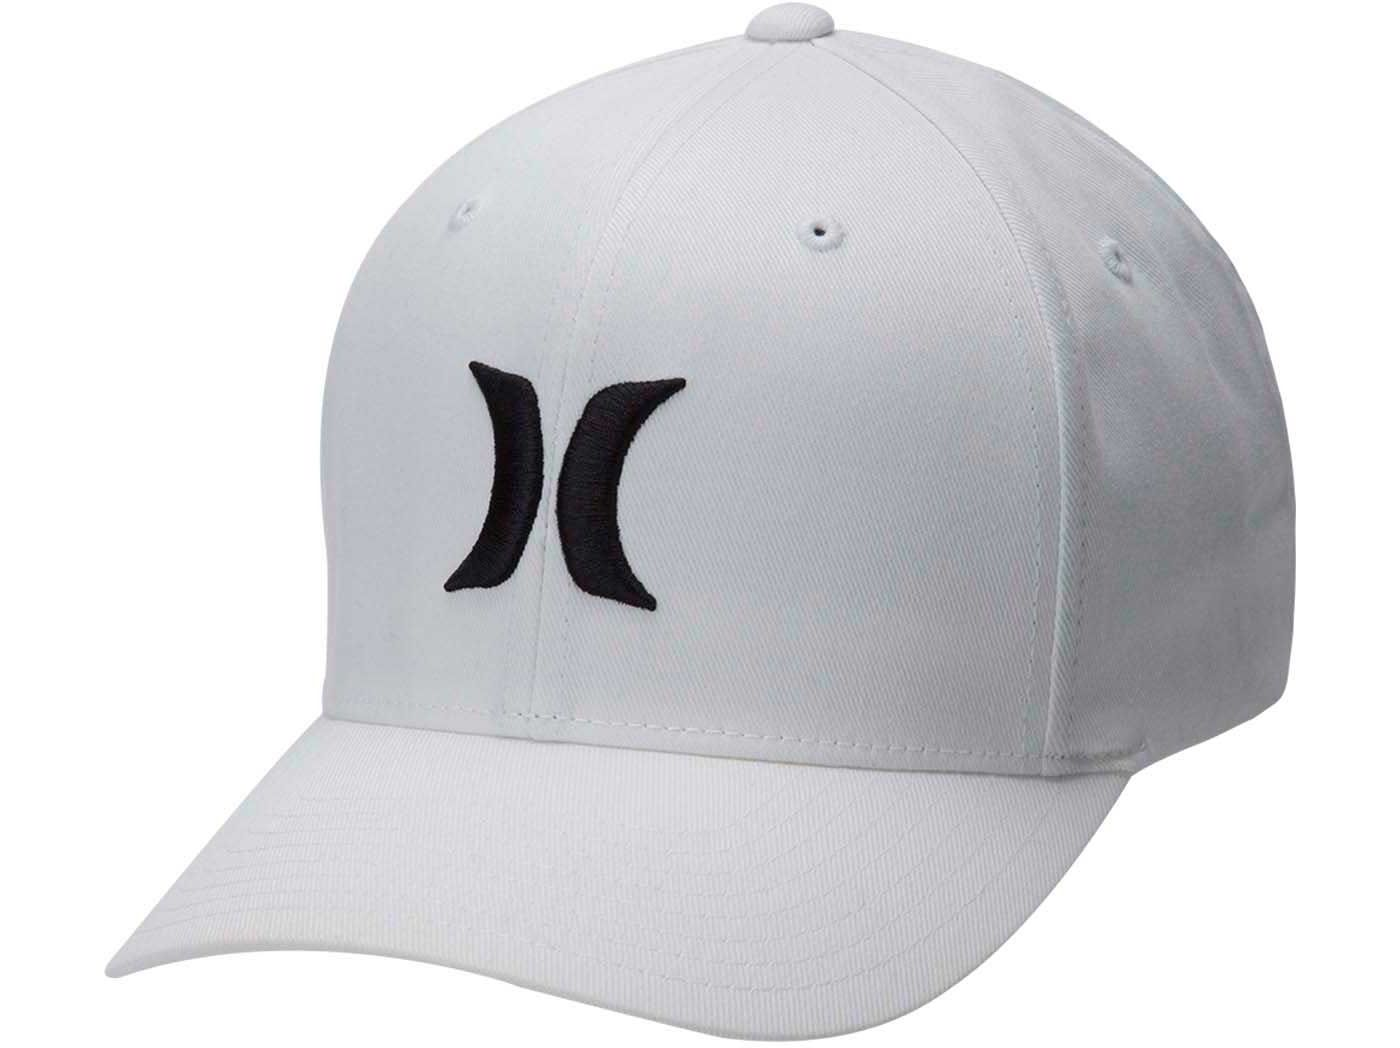 Hurley Men's One and Only Hat